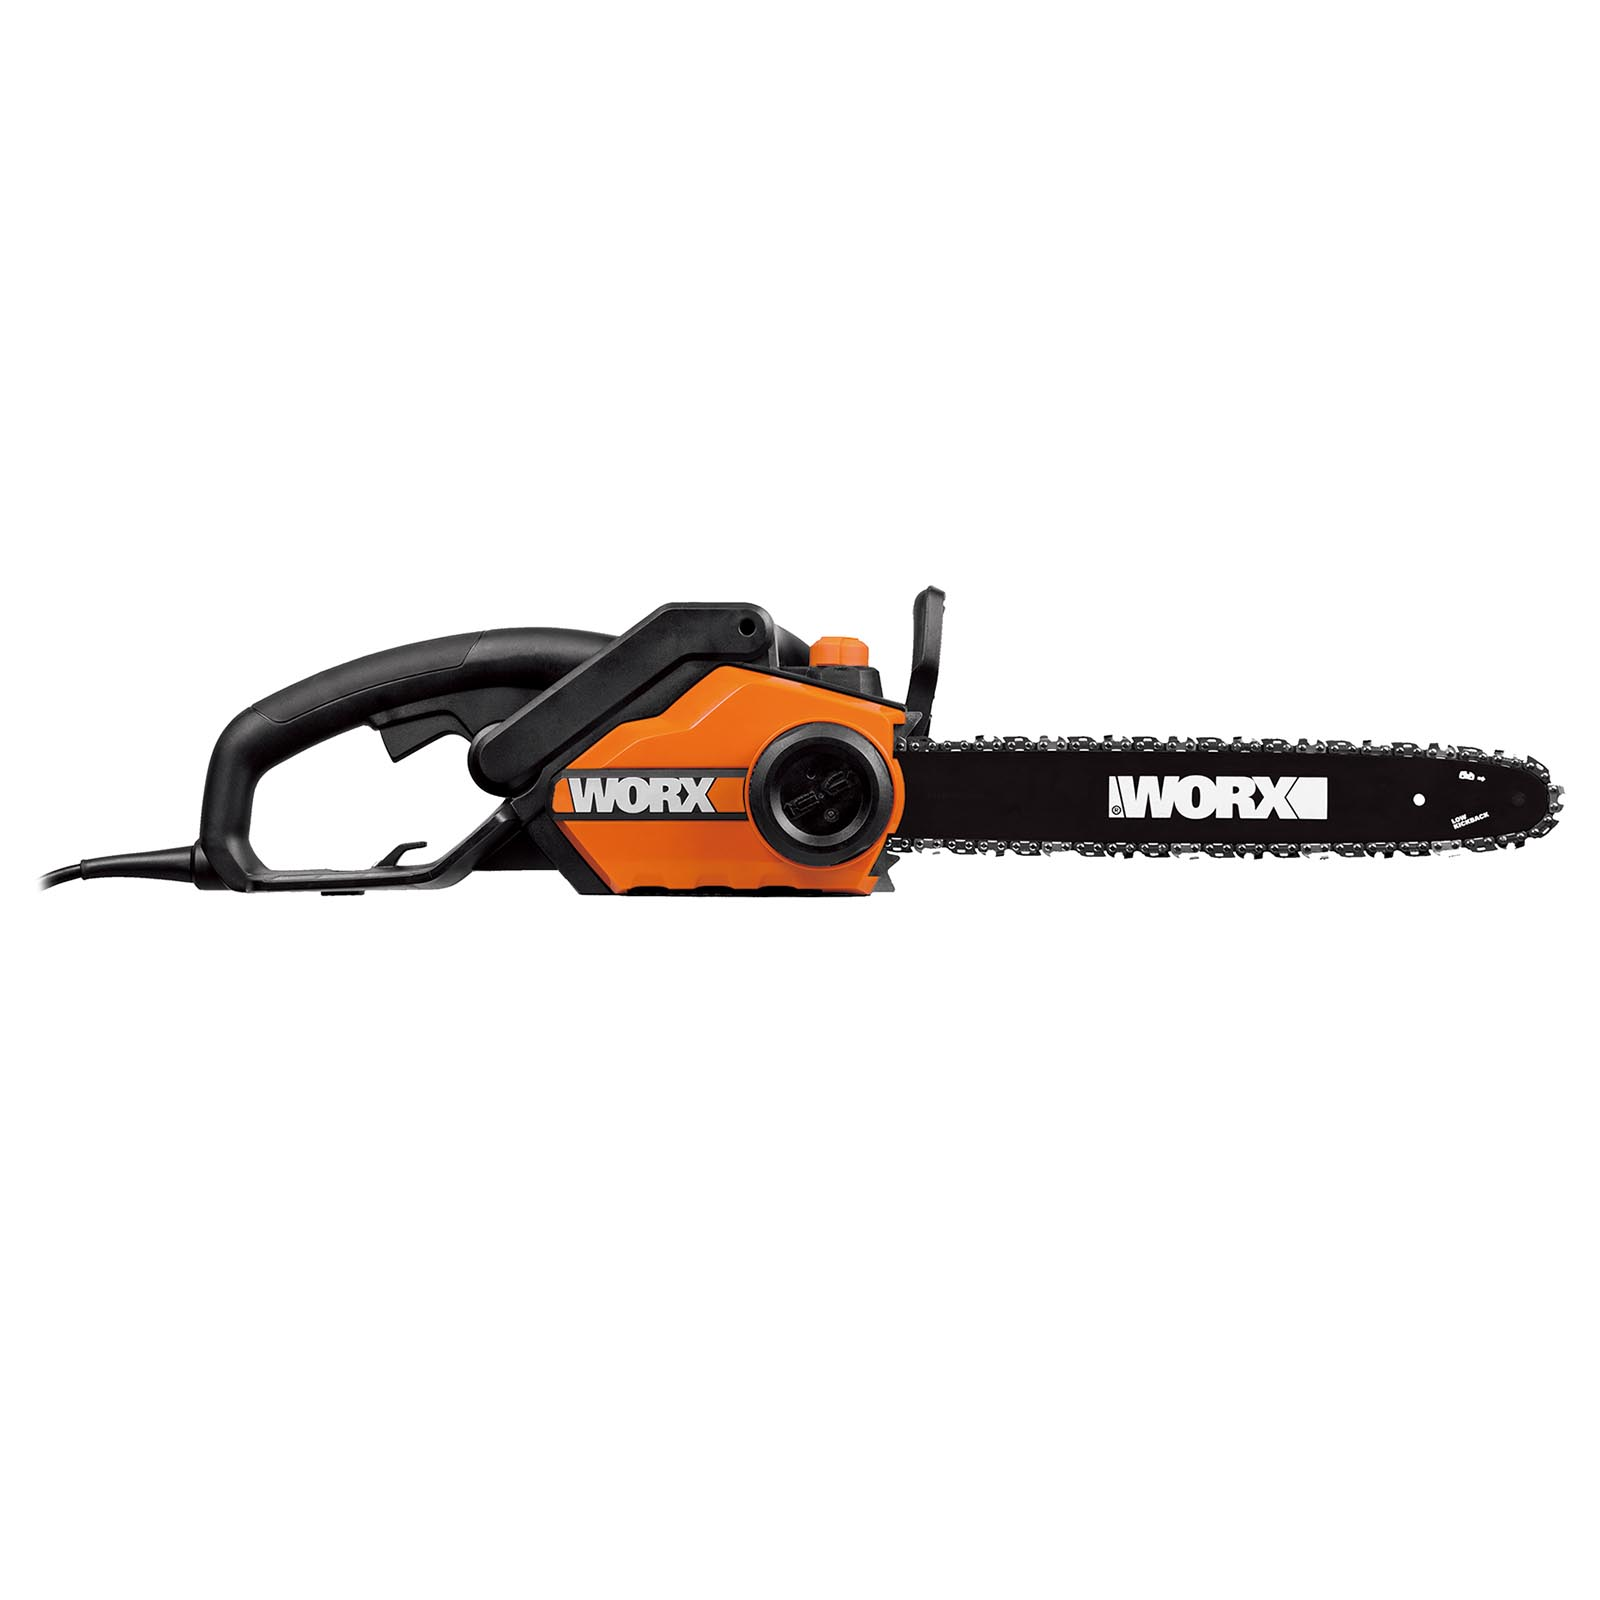 Worx 18 Inch Bar Powerful 15 Amp Lightweight Corded